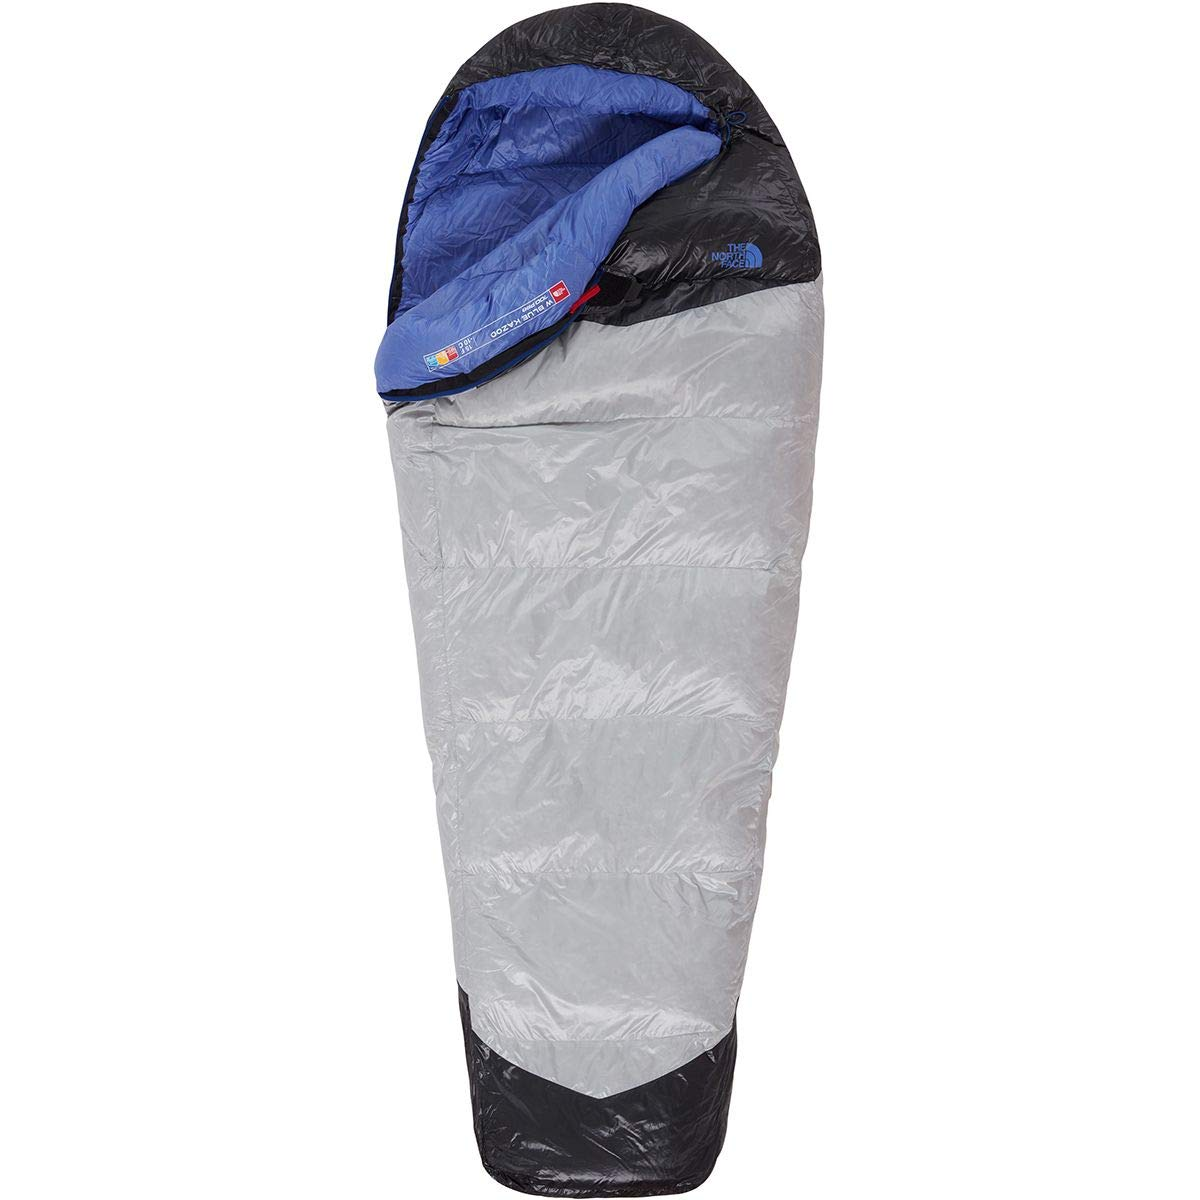 The North Face Kazoo Saco de Dormir, Mujer, High RSE Gry/Stellar Blue, Long: Amazon.es: Deportes y aire libre